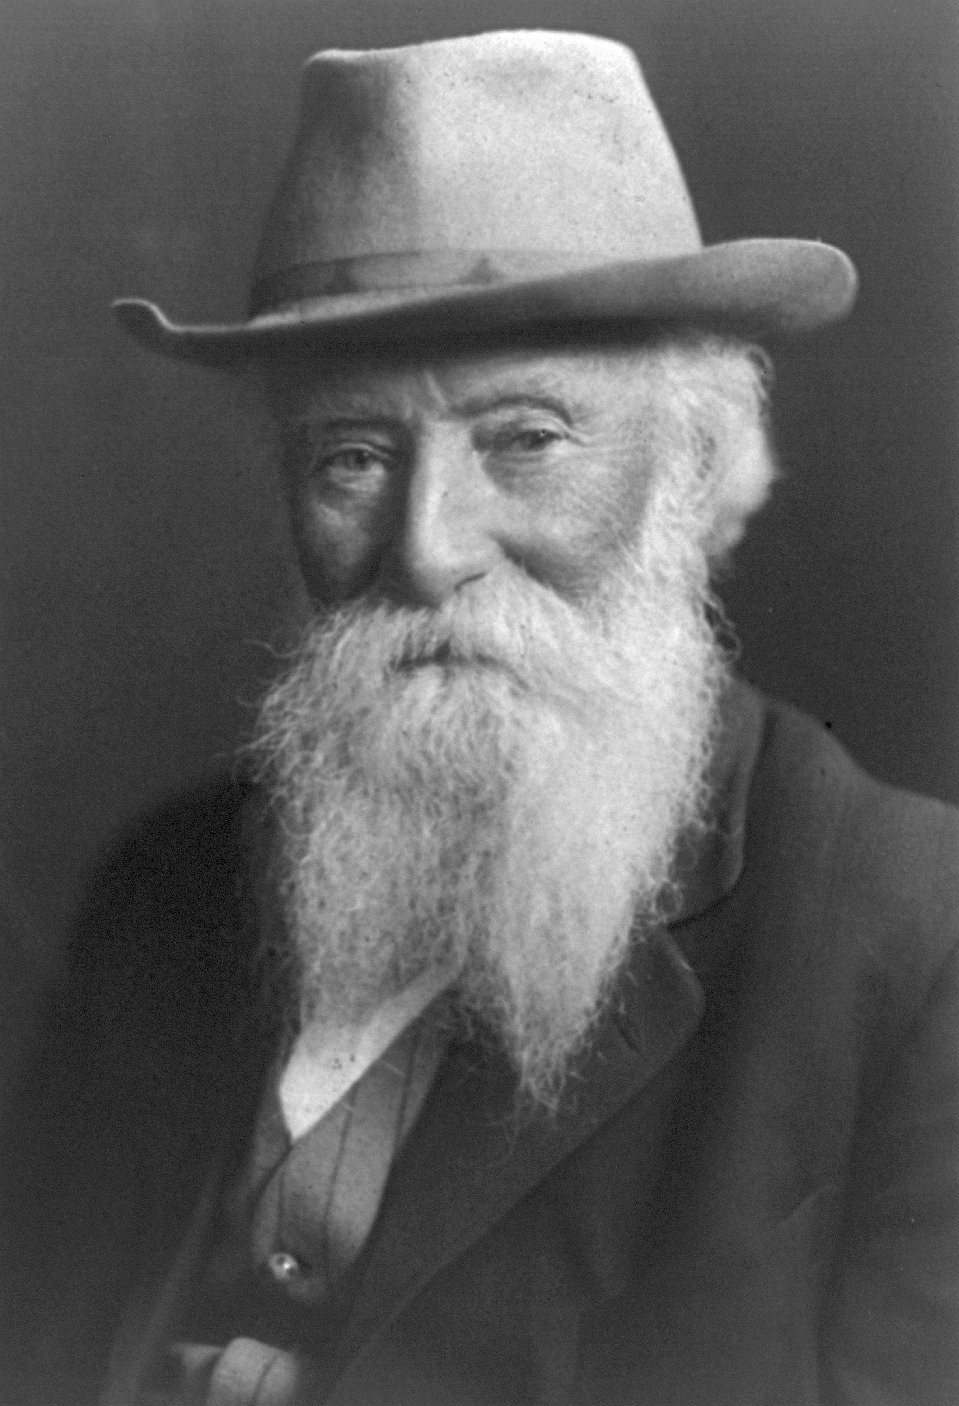 Portrait of John Burroughs